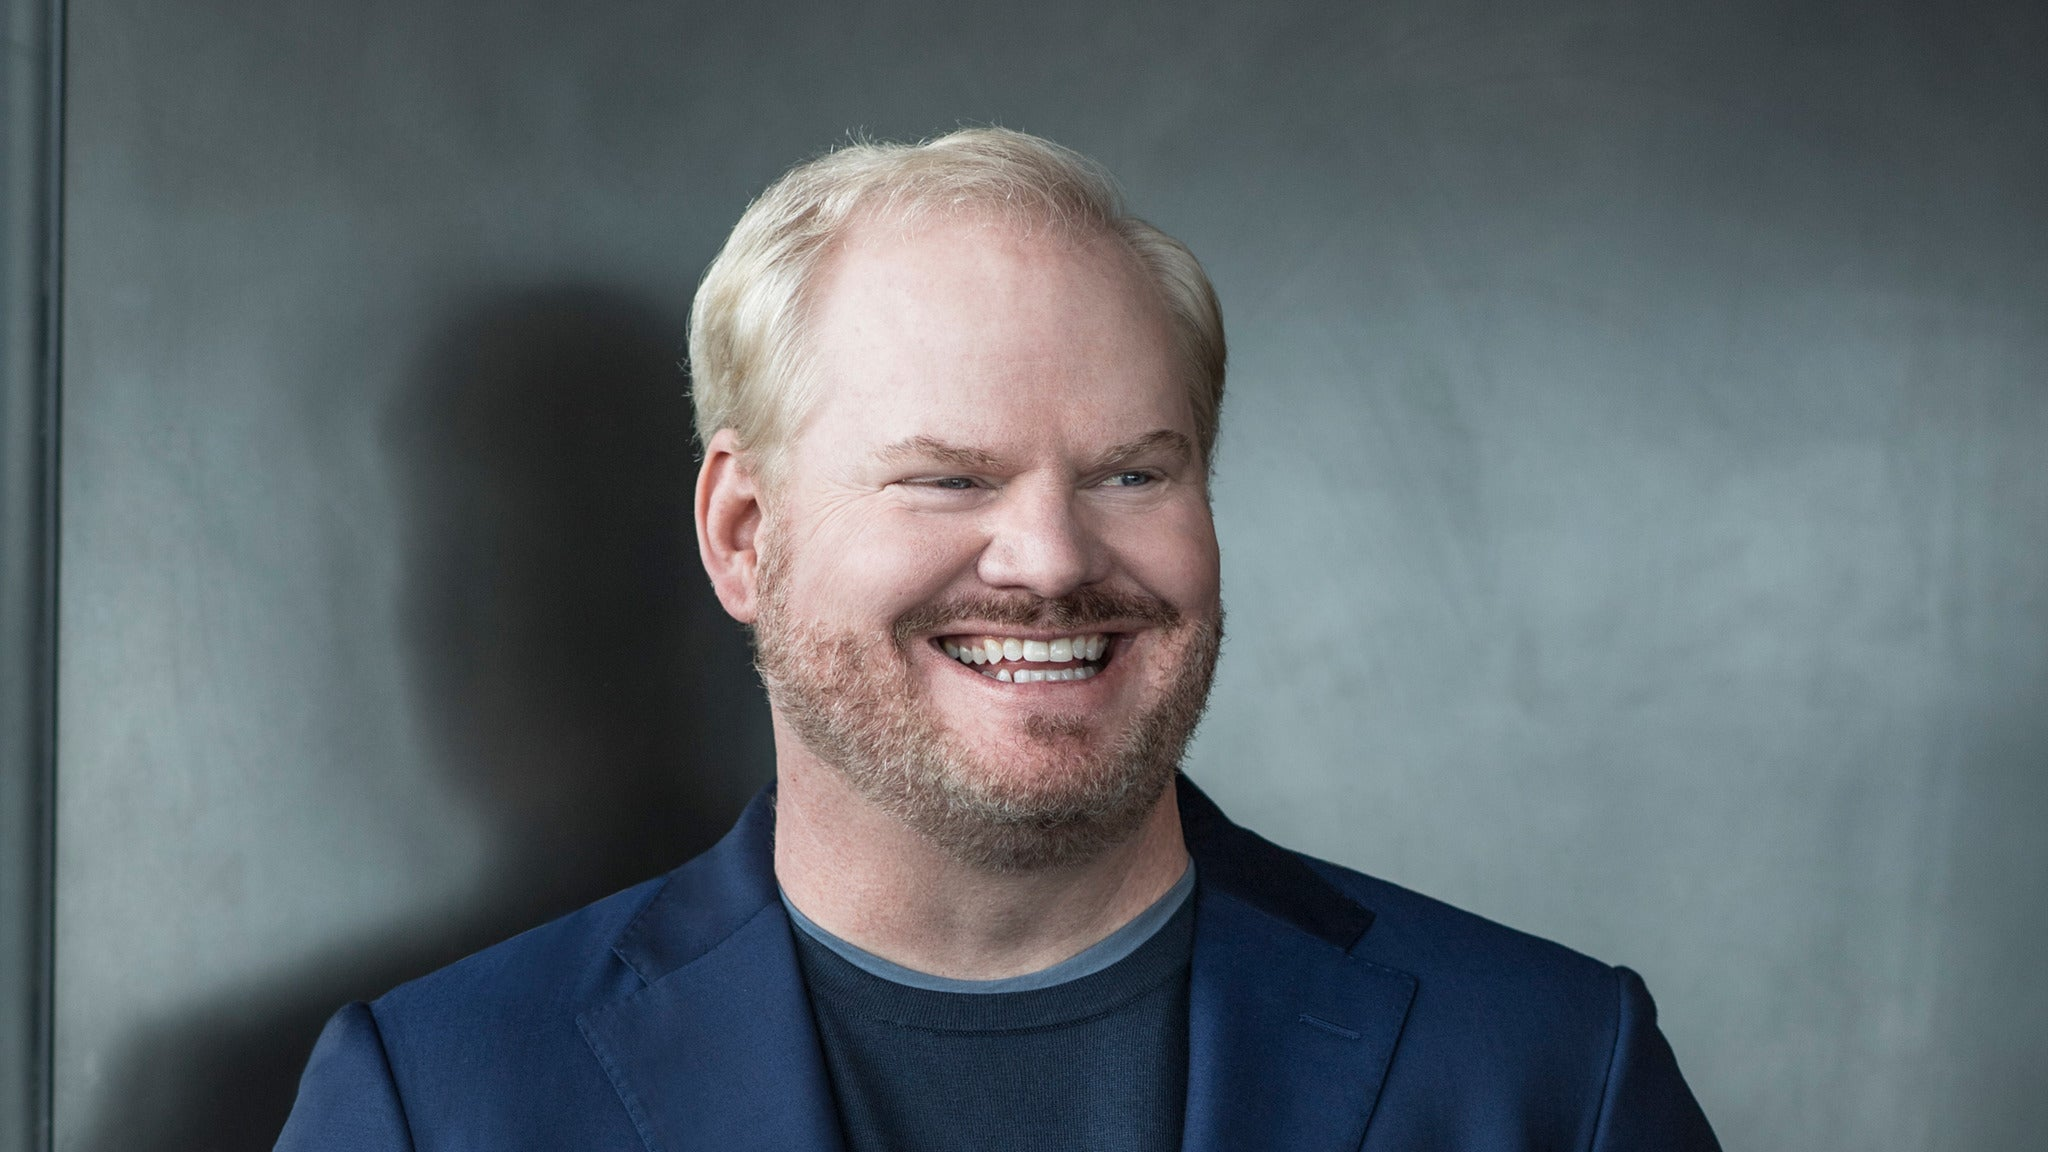 Jim Gaffigan: The Pale Tourist at Mayo Civic Center Arena